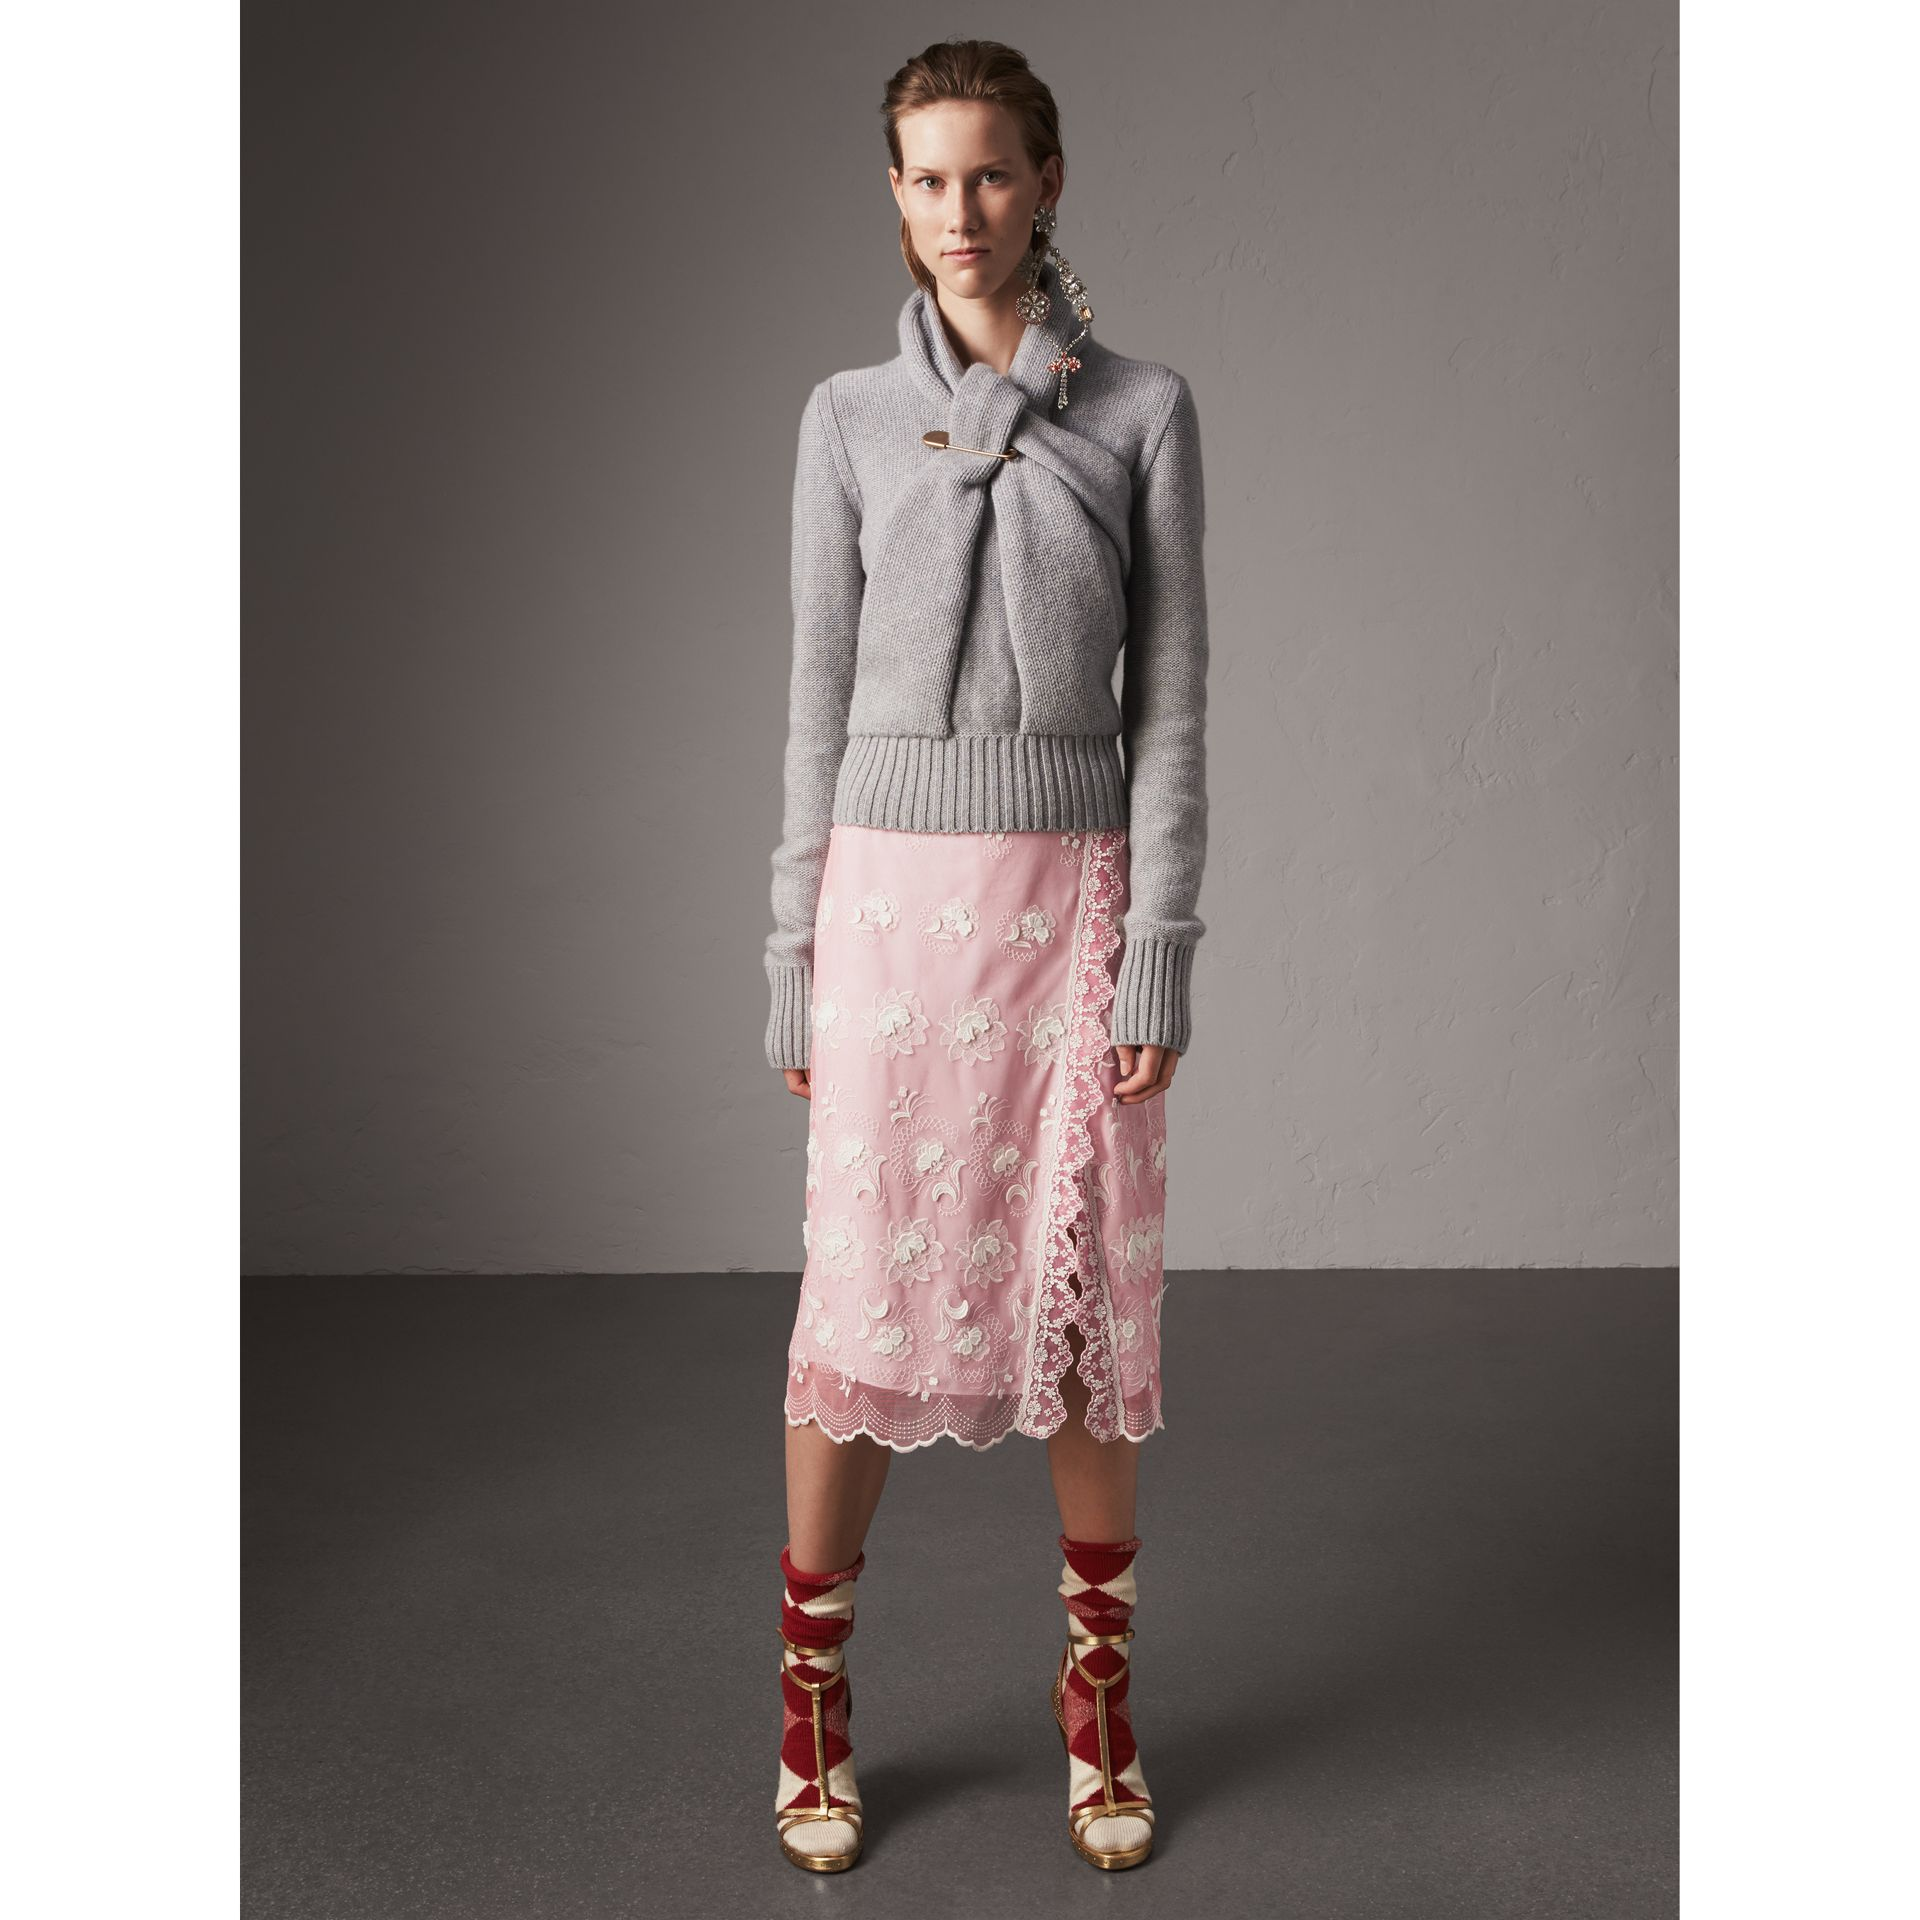 Chantilly Lace Trim Embroidered Tulle Skirt in Rose Pink/white - Women | Burberry - gallery image 5